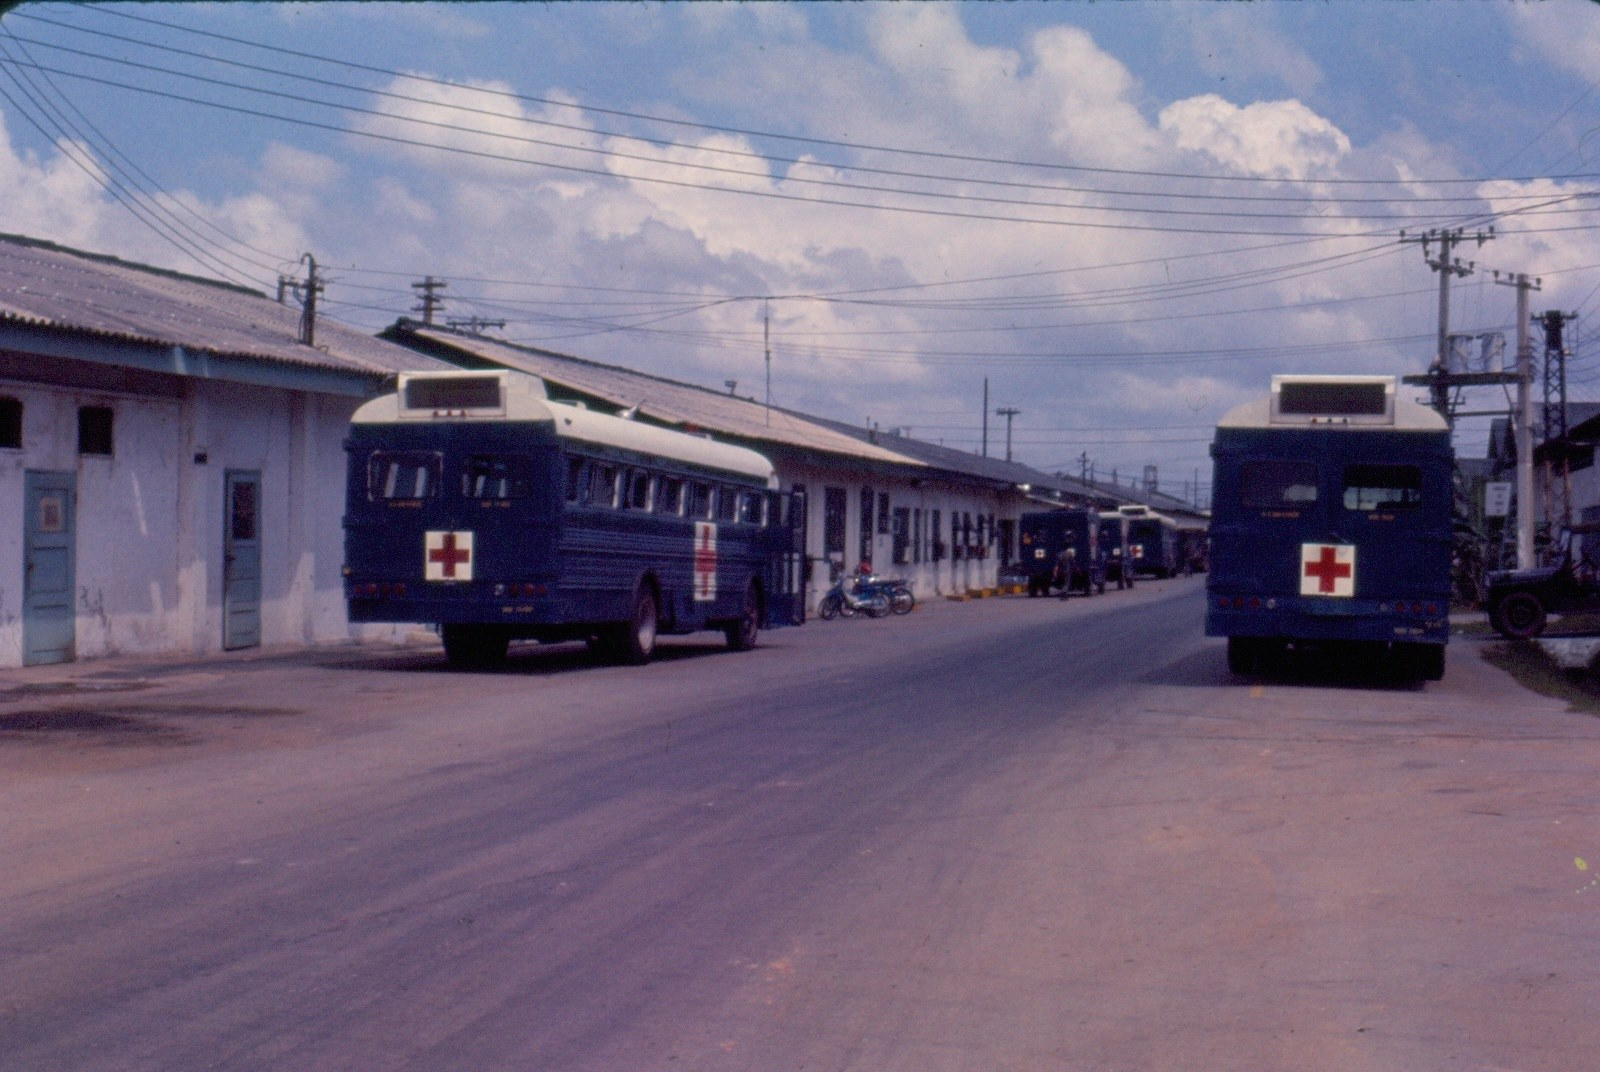 Buses for Wounded Soldiers